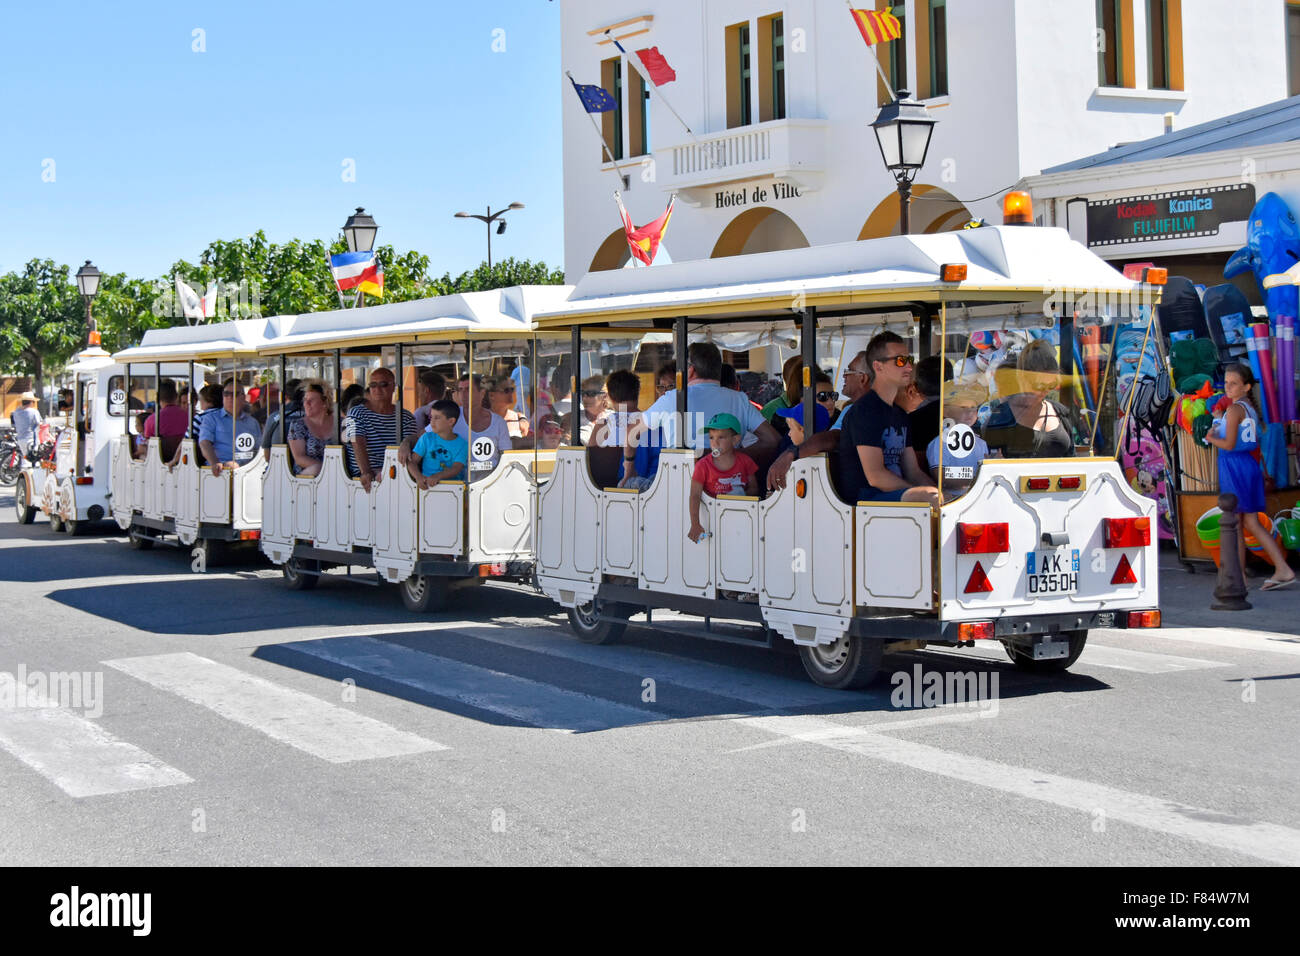 Sightseeing road train transport for visitors Saintes Maries de la Mer seaside resort town on Mediterranean coast - Stock Image